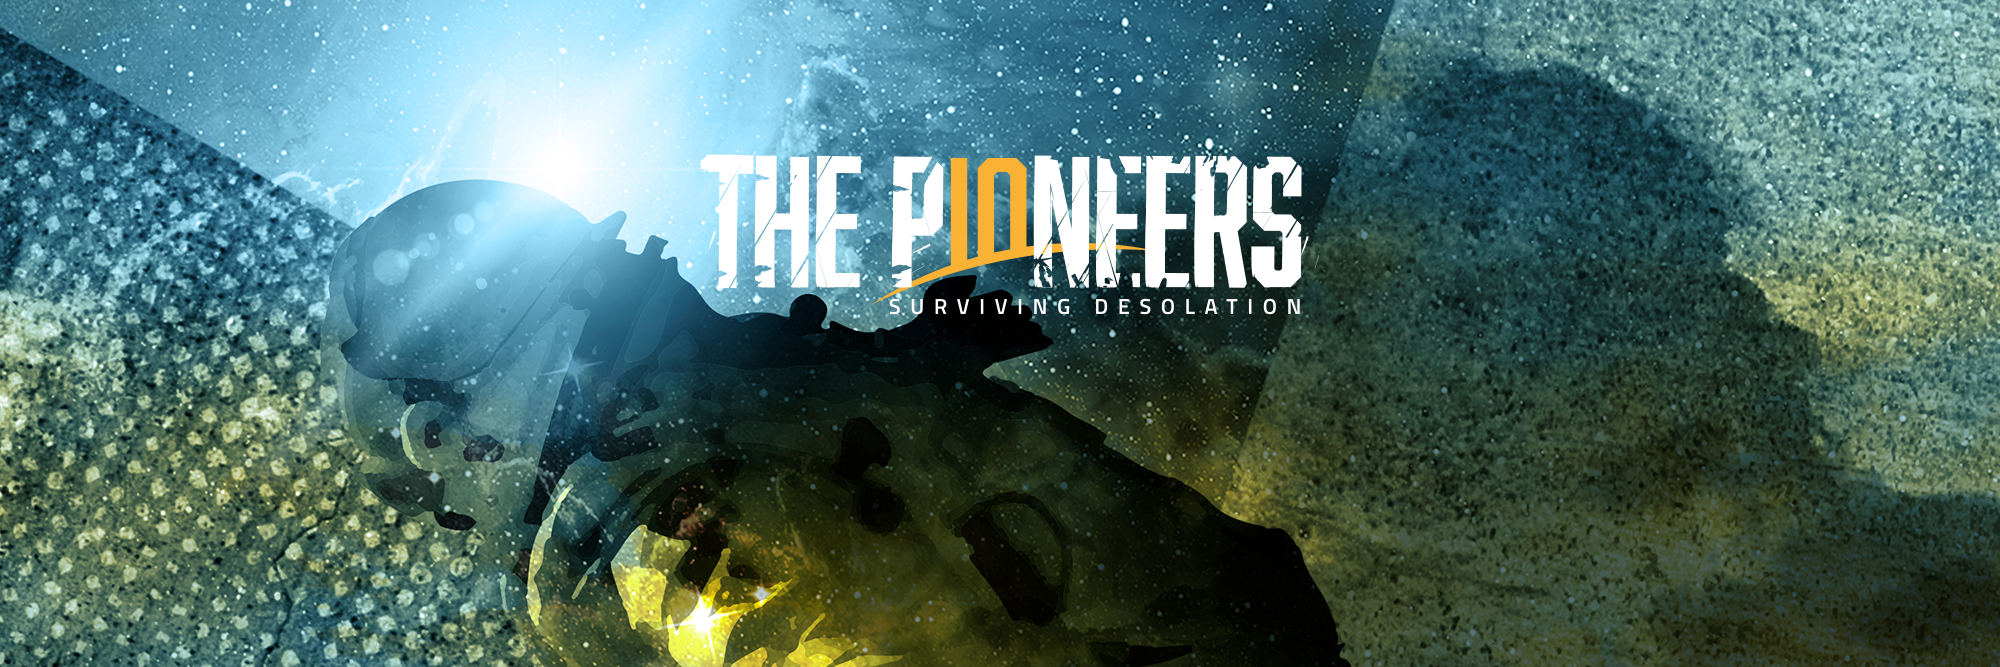 [EN] The Pioneers logo